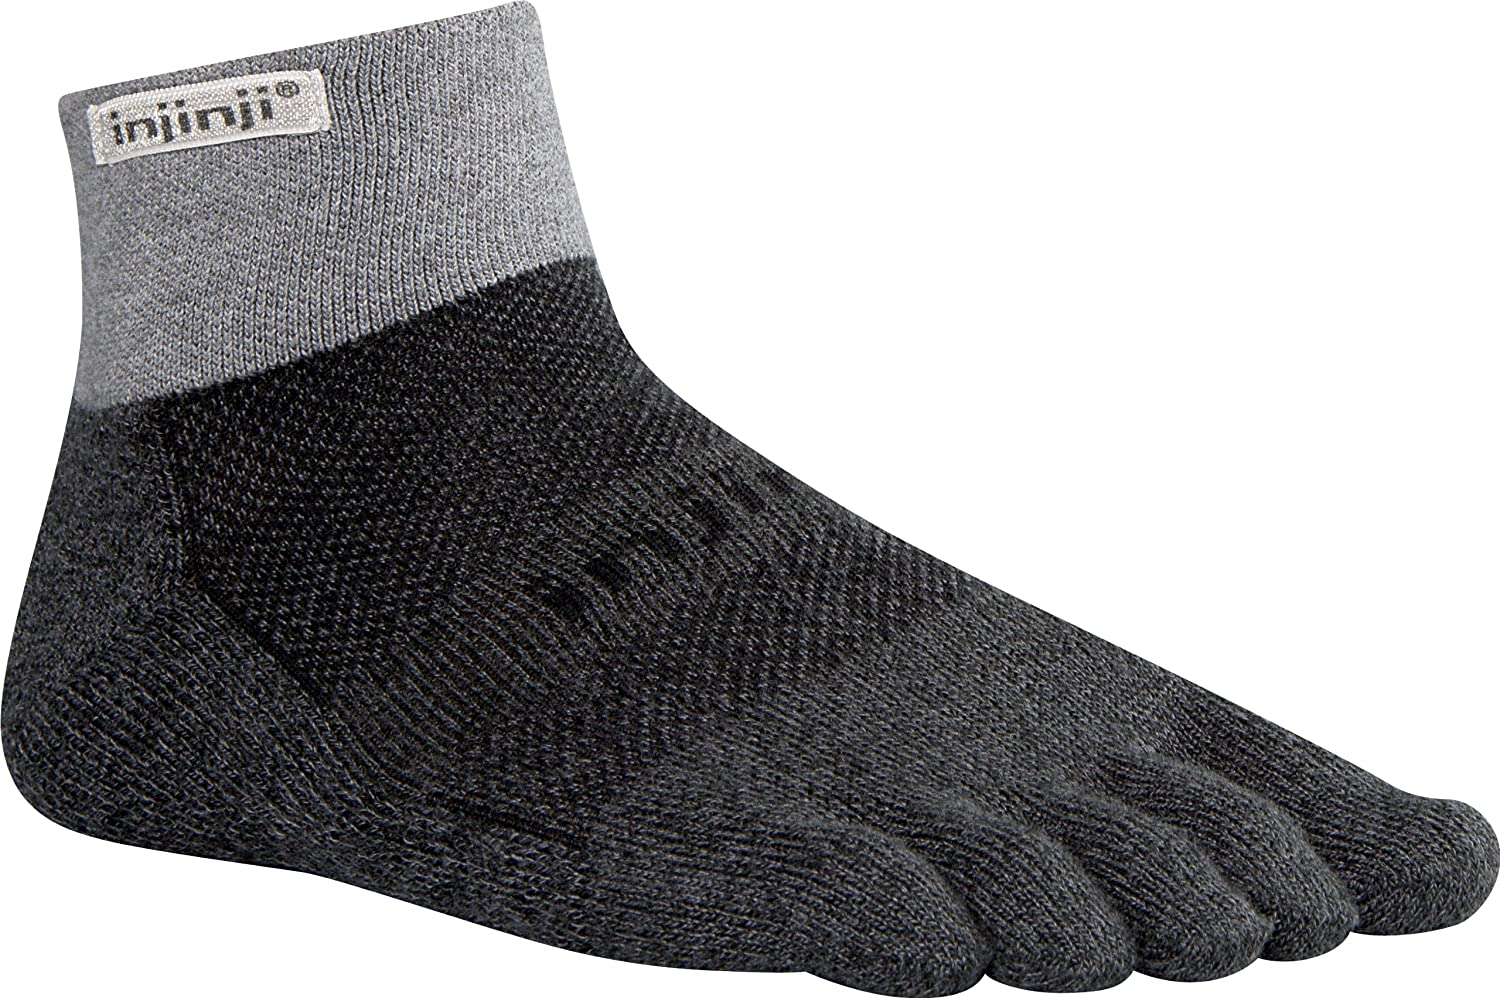 Injinji Trail 2.0 Midweight Mini-Crew Socks